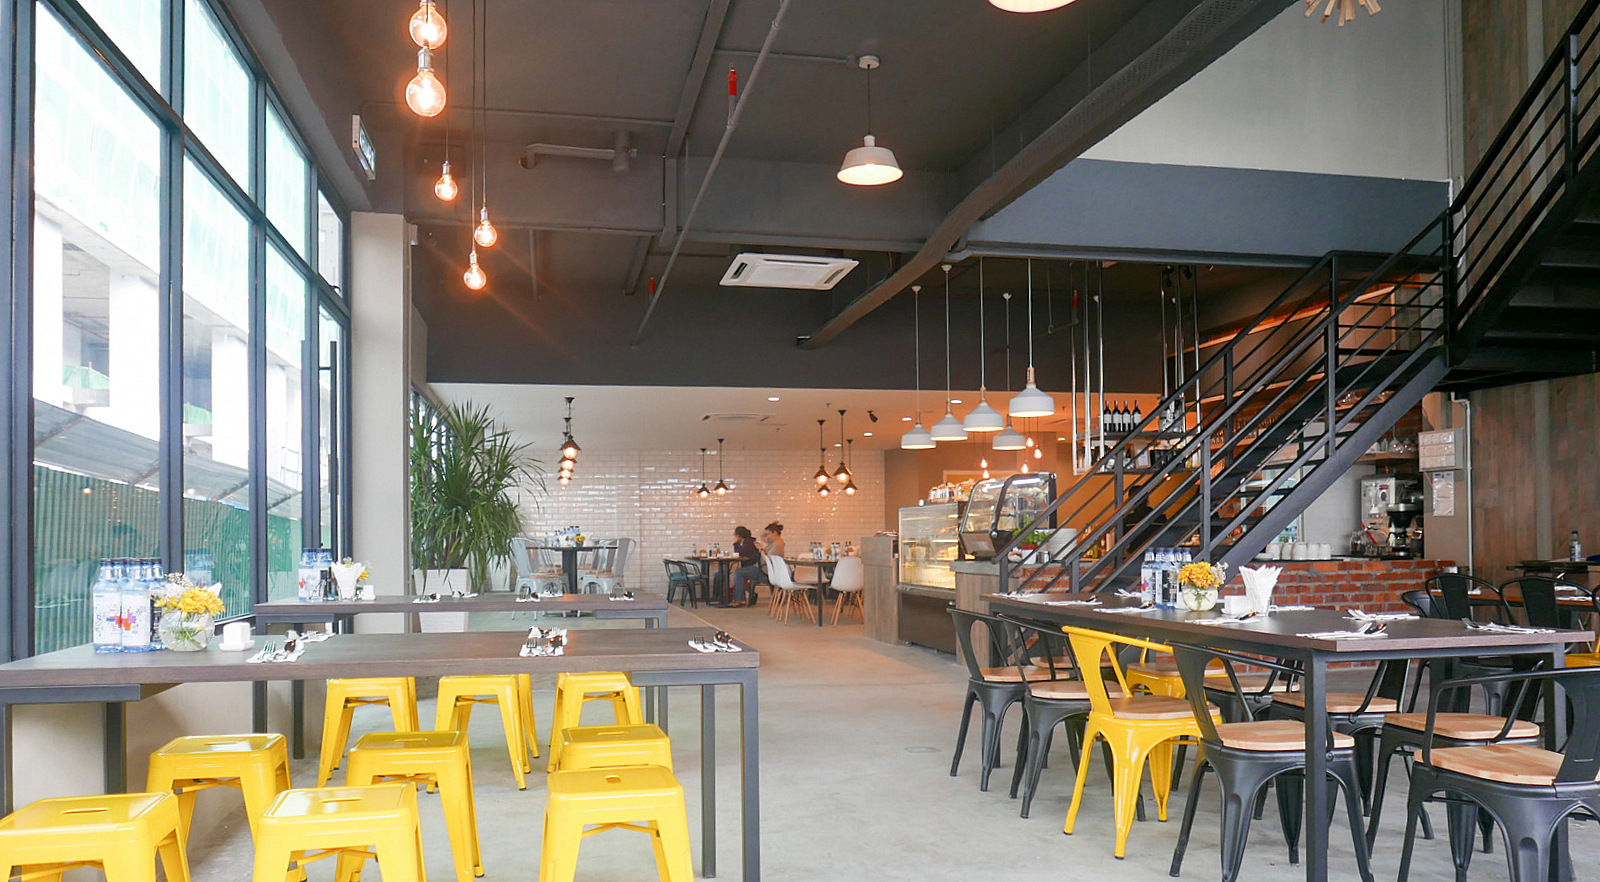 Blue apron restaurant - Yellow Apron Brings A Bright New Silver Lining To Workers In Pj S Section 13 Colouring Outside The Lines Of What To Expect On A Street Of Warehouses